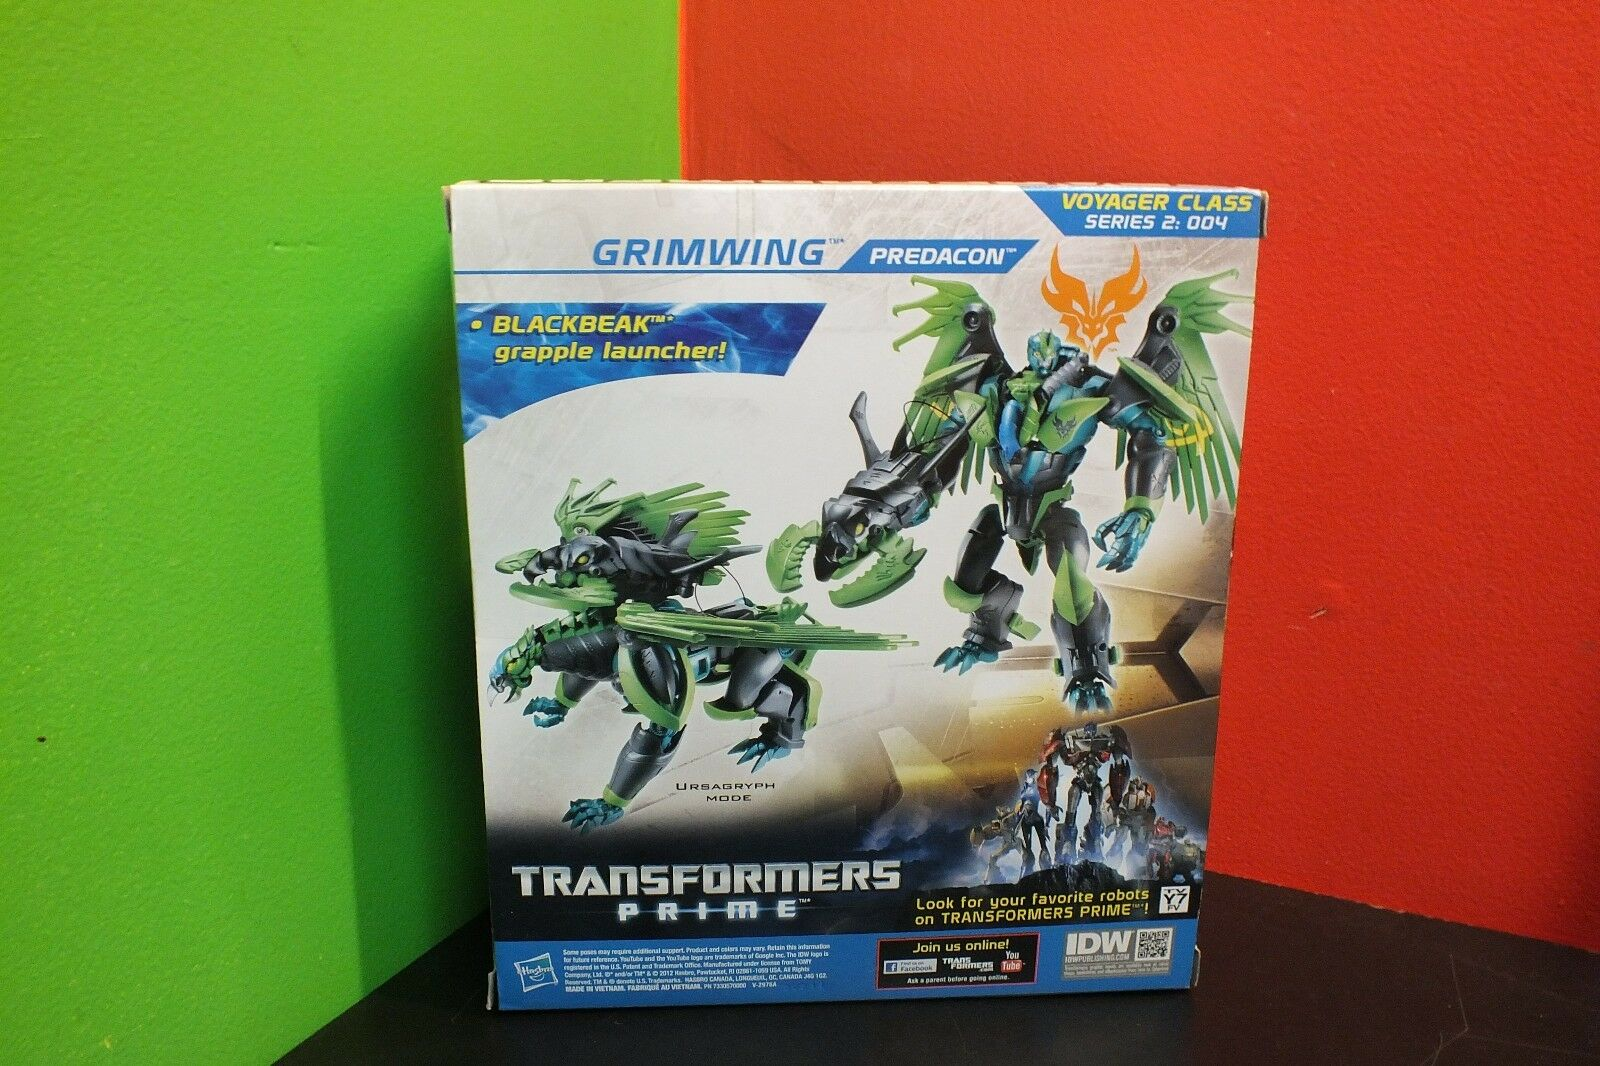 Hasbro Transformers Prime Beast Hunters Predacon Grimwing Action Action Action Figure UNOPENED 62b193